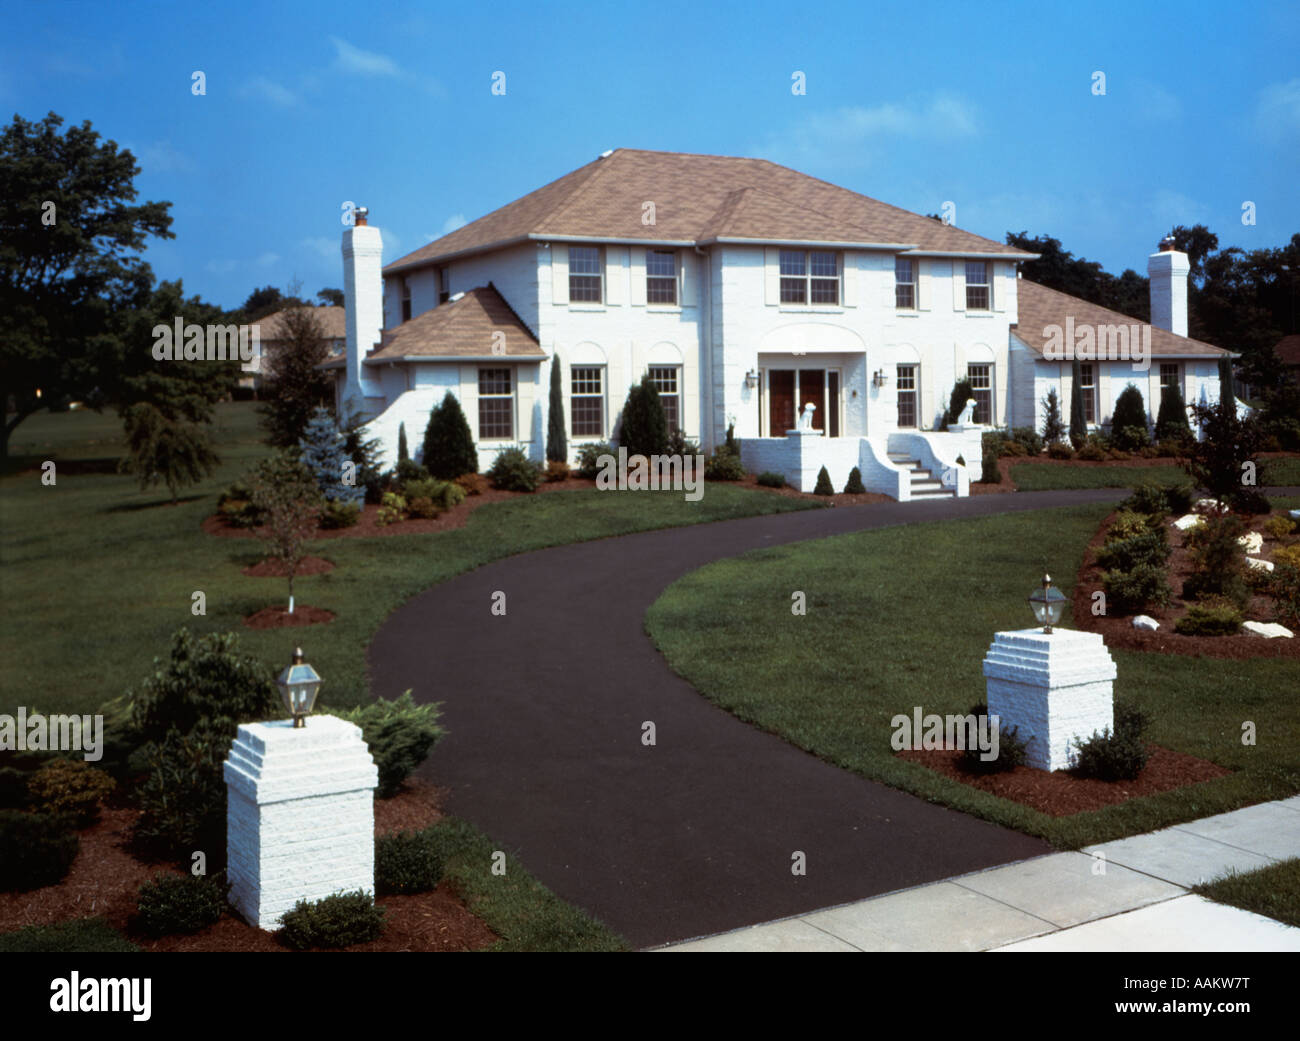 WHITE TWO STORY RESIDENTIAL HOME AND CURVED DRIVEWAY - Stock Image